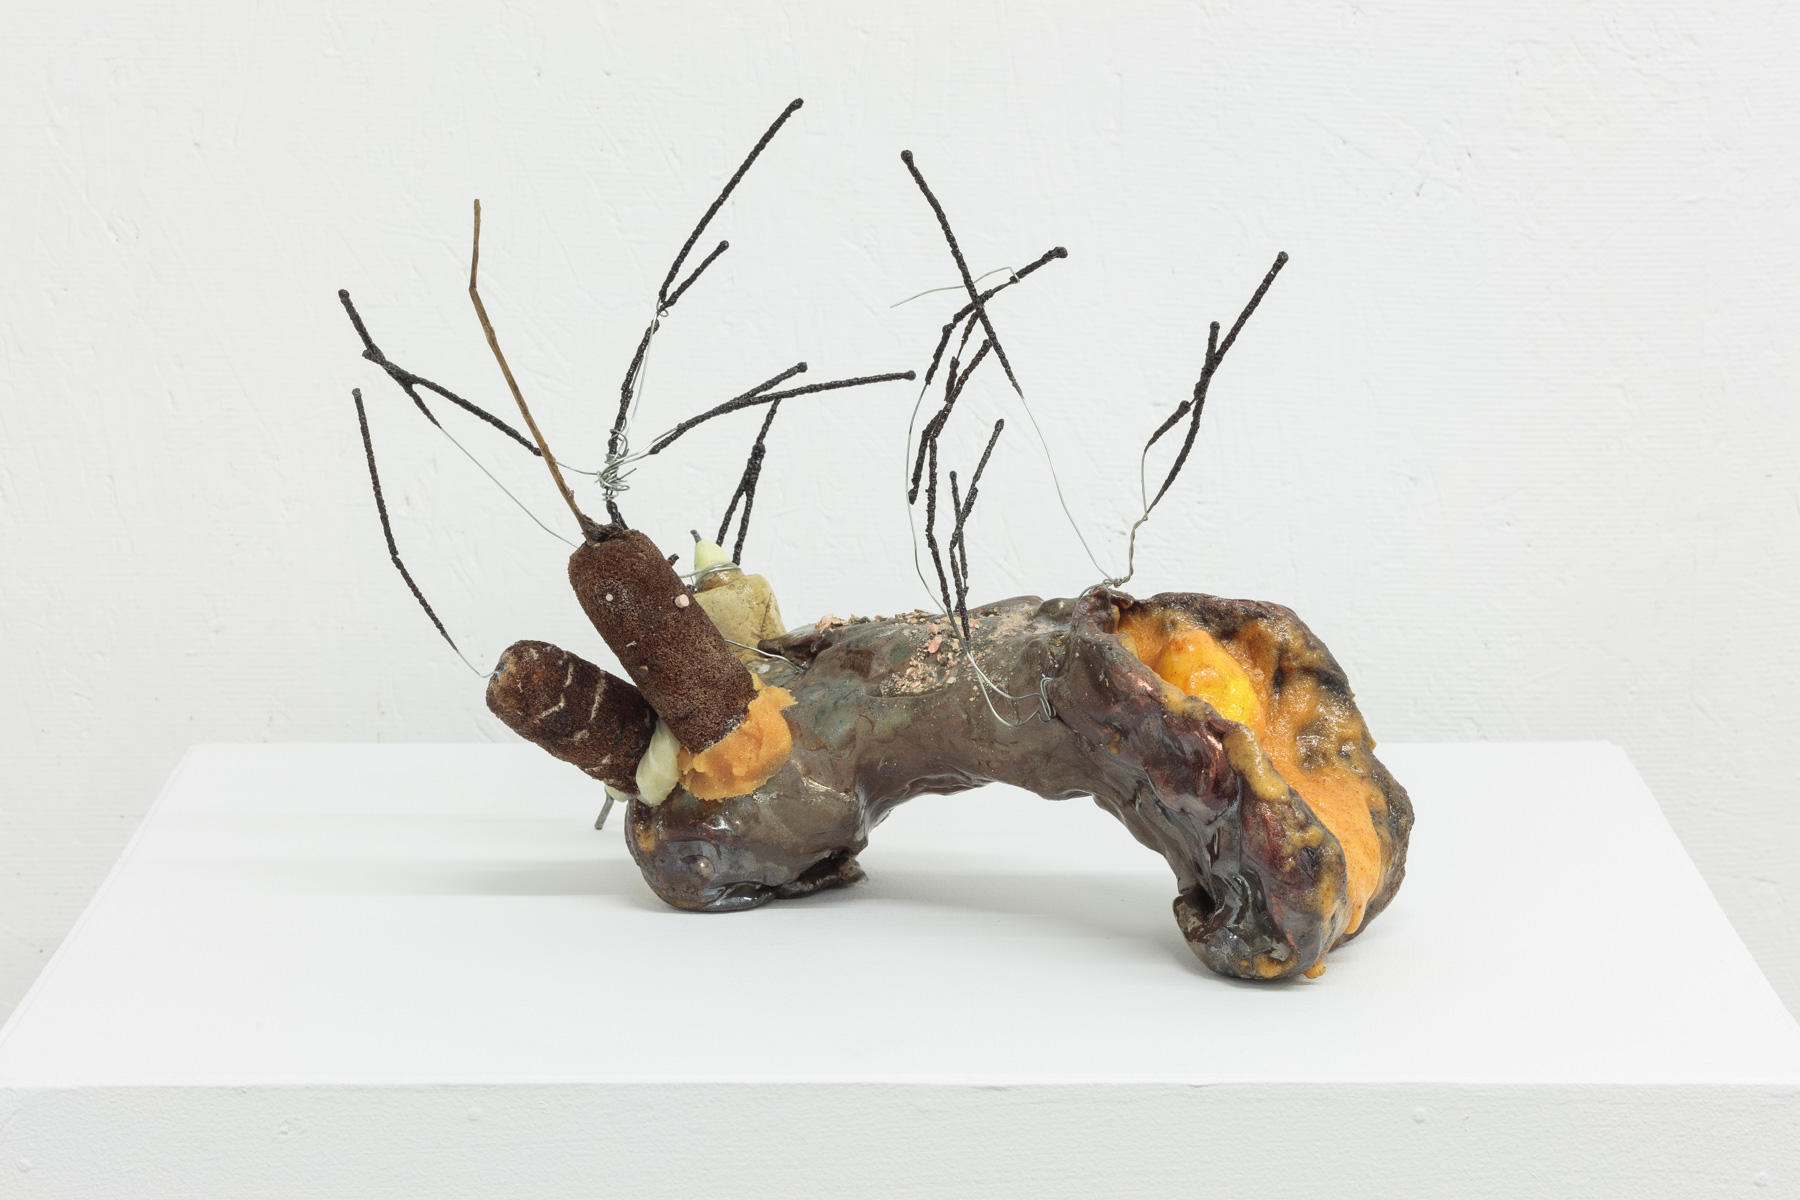 """F(akakt)ocaccia ,""  Giordano, 2016 - 2019. Glazed ceramic, Orange Tang, epoxy resin, artificial kumquat, cattails, nail polish, sparklers, shellac, leather, steel, wire hanger, contact lenses, bald eagle excrement, 13 x 10 x 10.5 inches. Photo courtesy of the artist and SARDINE."